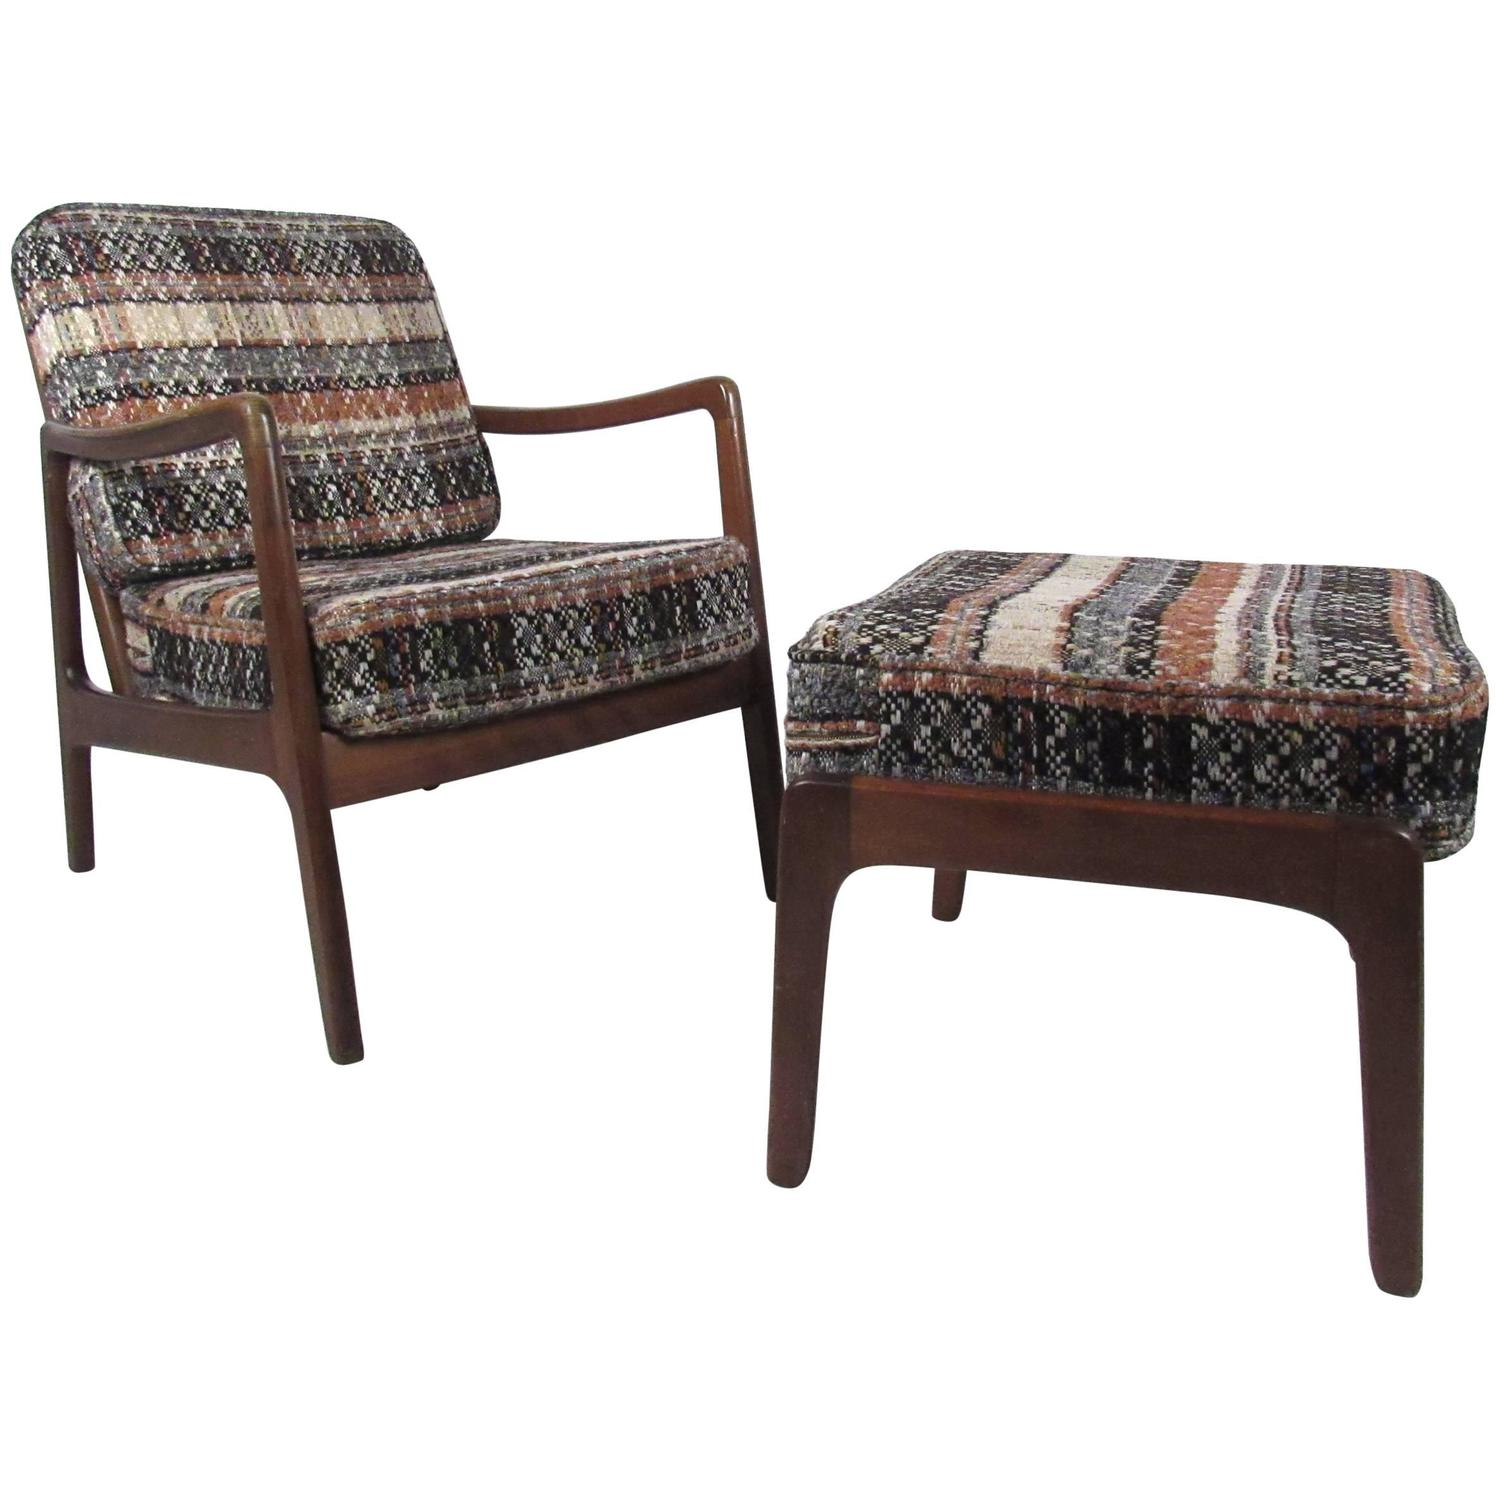 Mid Century Modern Lounge Chairs Mid Century Modern Ole Wanscher Lounge Chair With Ottoman